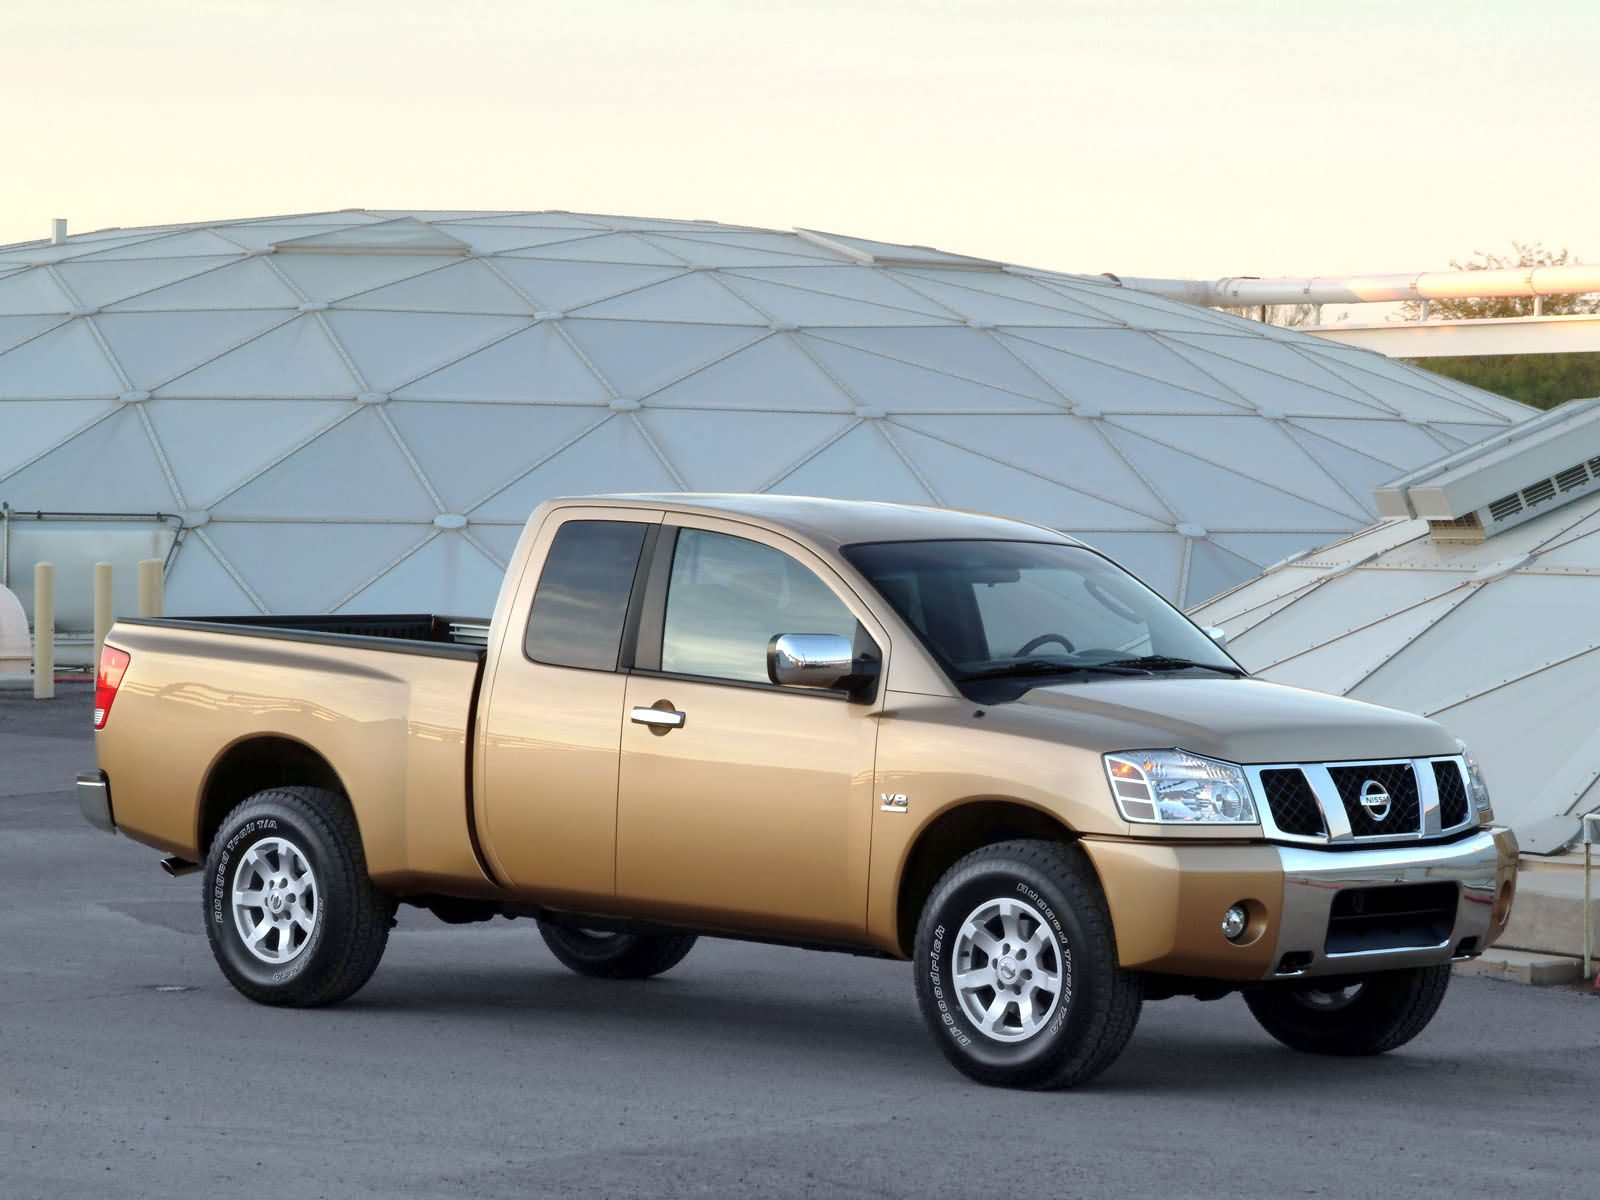 Nissan Titan photo 6661